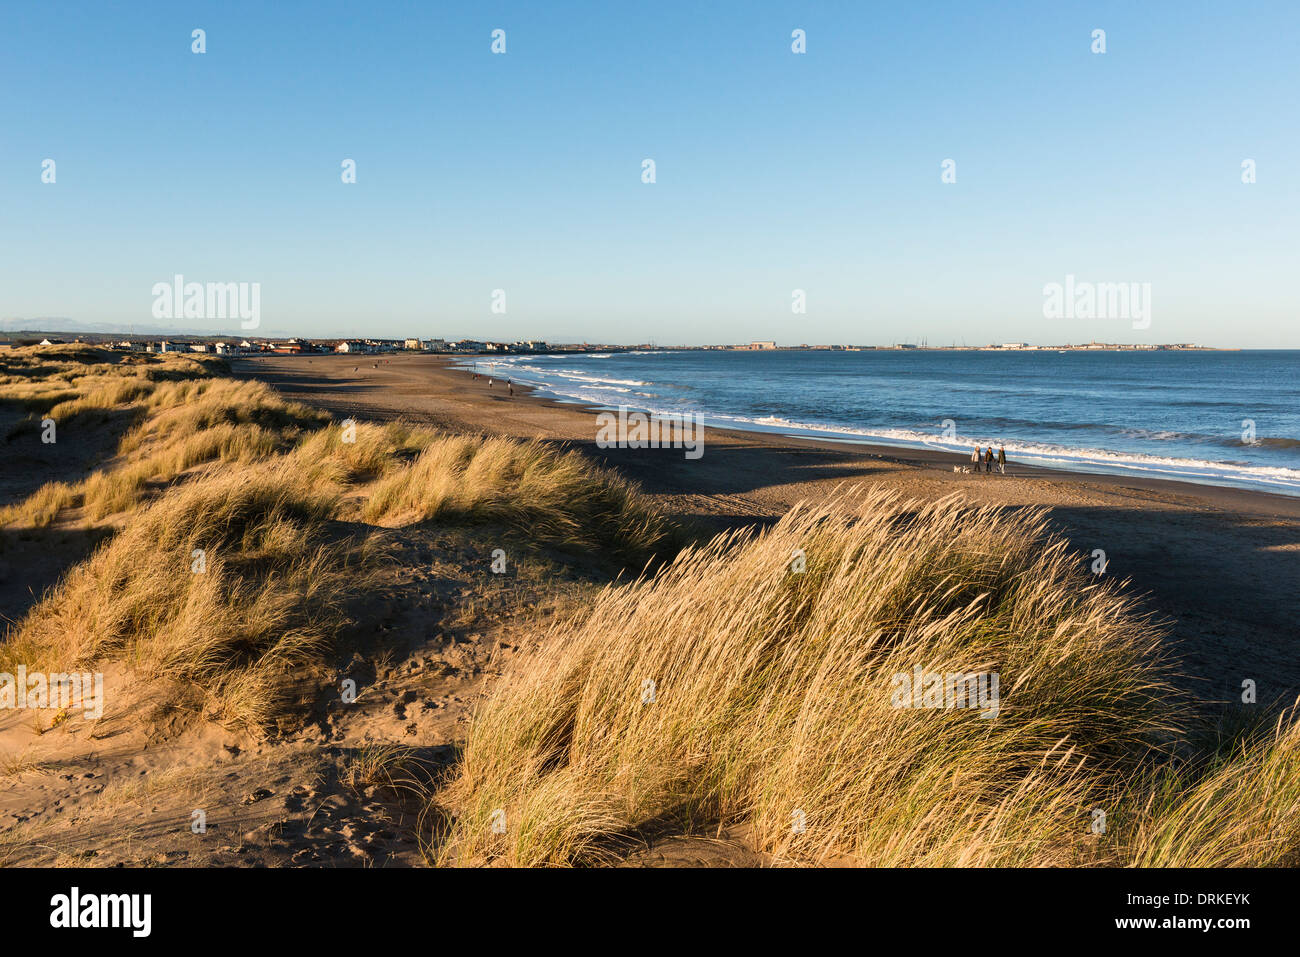 Seaton carew dunes